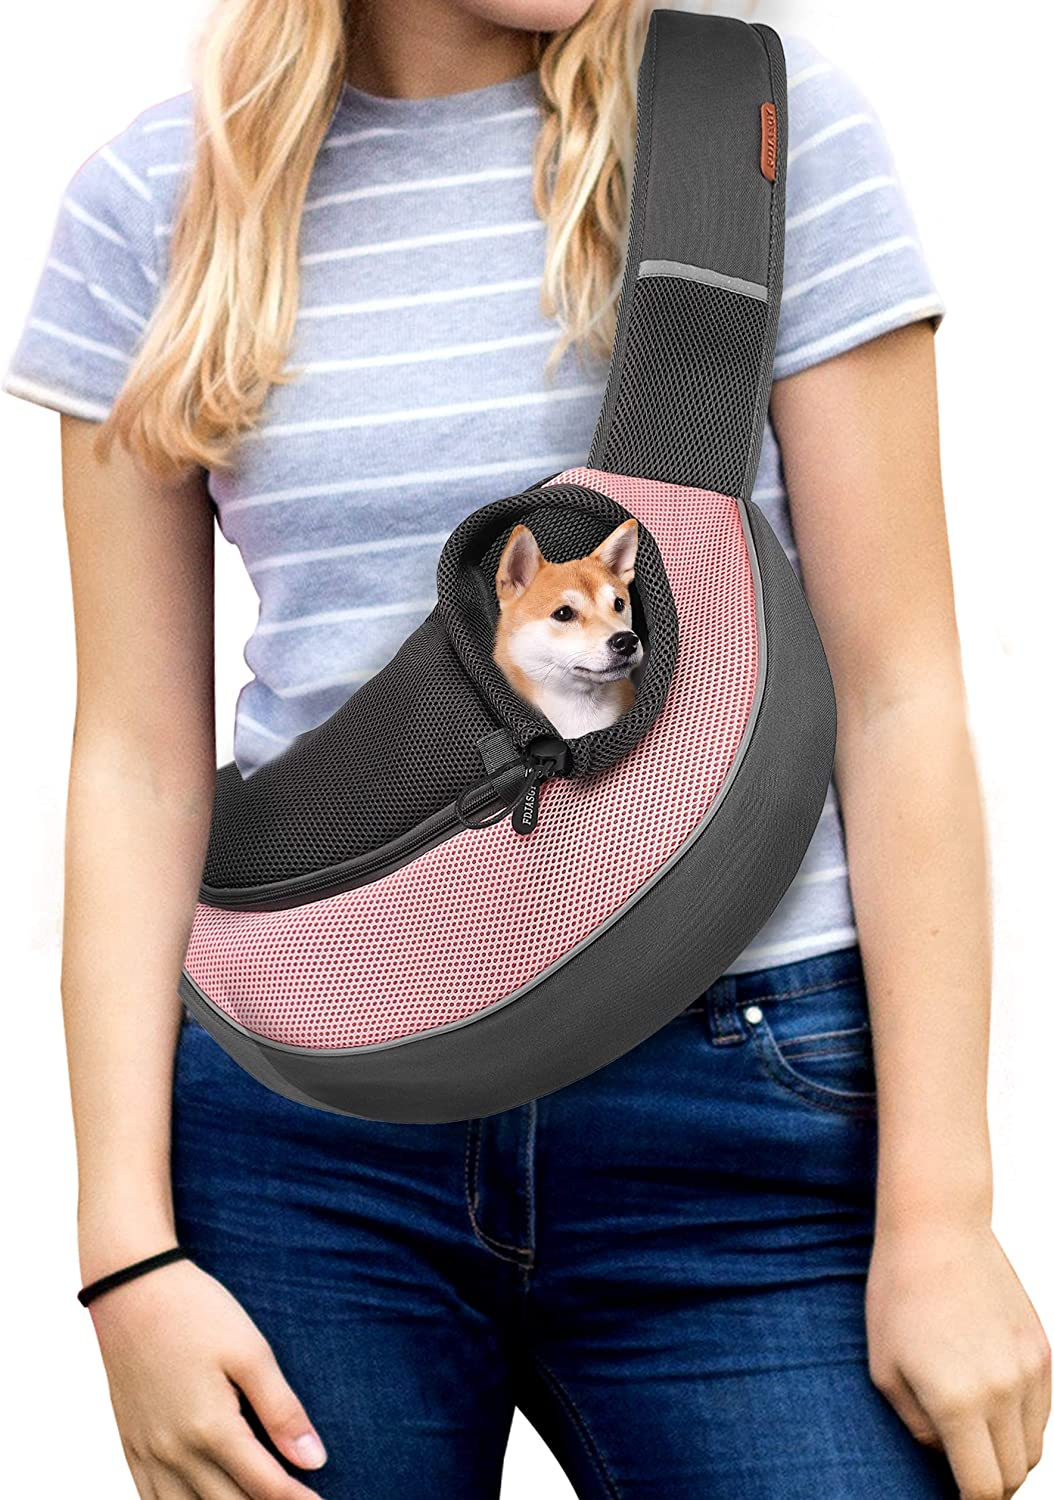 FDJASGY Pet Sling Carrier for Small Cats Mesh NEW before selling ☆ Dogs Safety and trust Tr Breathable